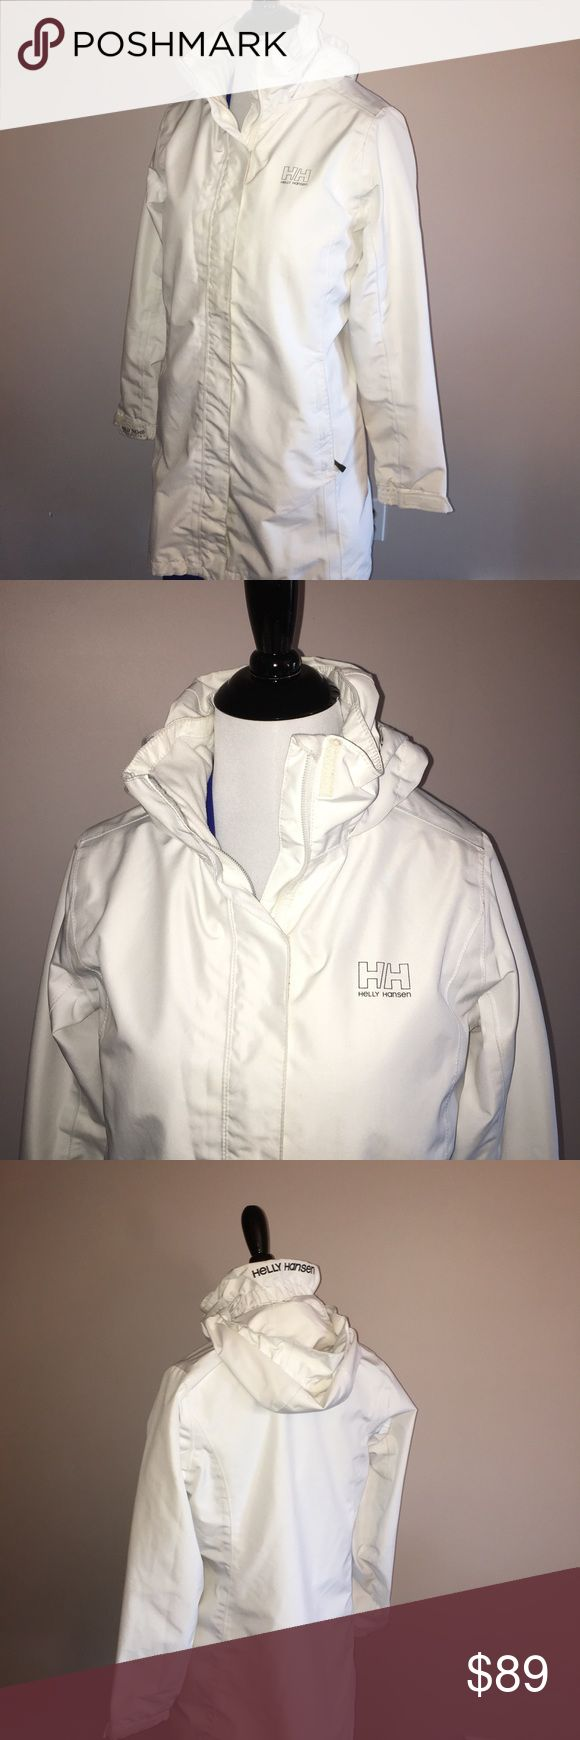 Gorgeous white Helly Hansen rain/windbreaker Gorgeous and unique white Helly Hansen rain/windbreaker. Long and comfortable in excellent condition! Helly Hansen Jackets & Coats Utility Jackets